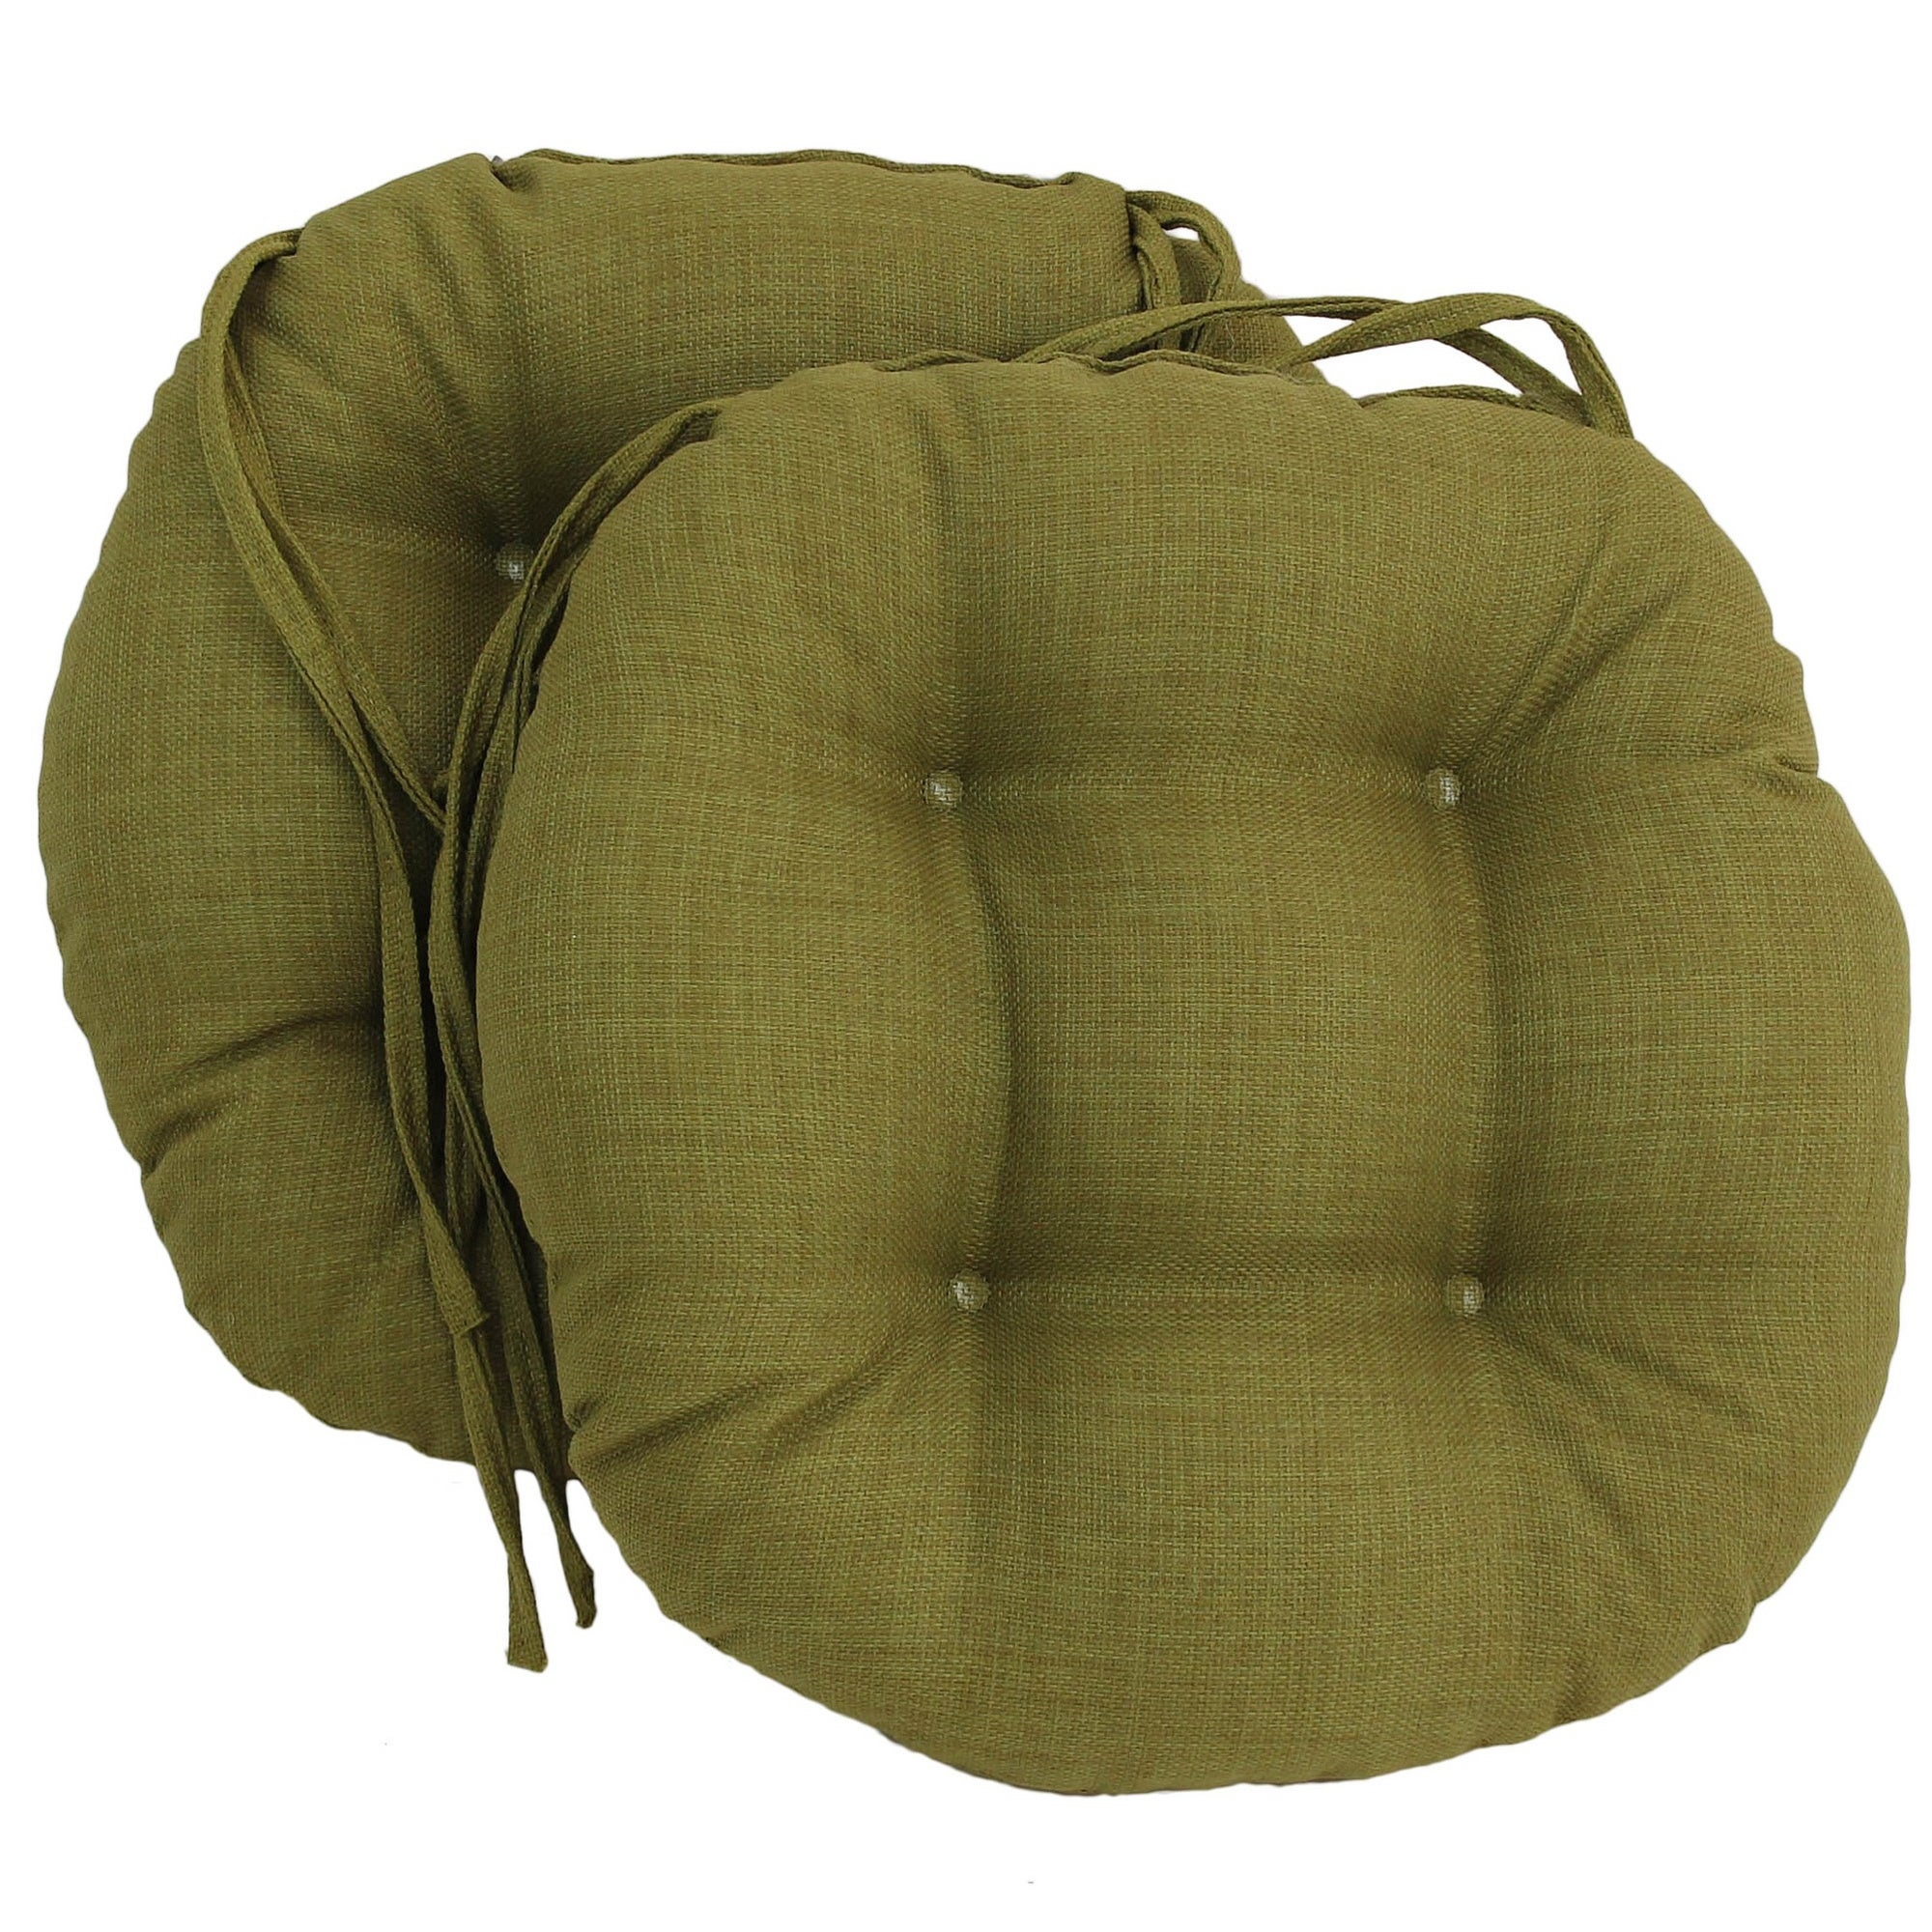 Blazing Needles 16x16 inch Round Outdoor Chair Cushions Set of 2